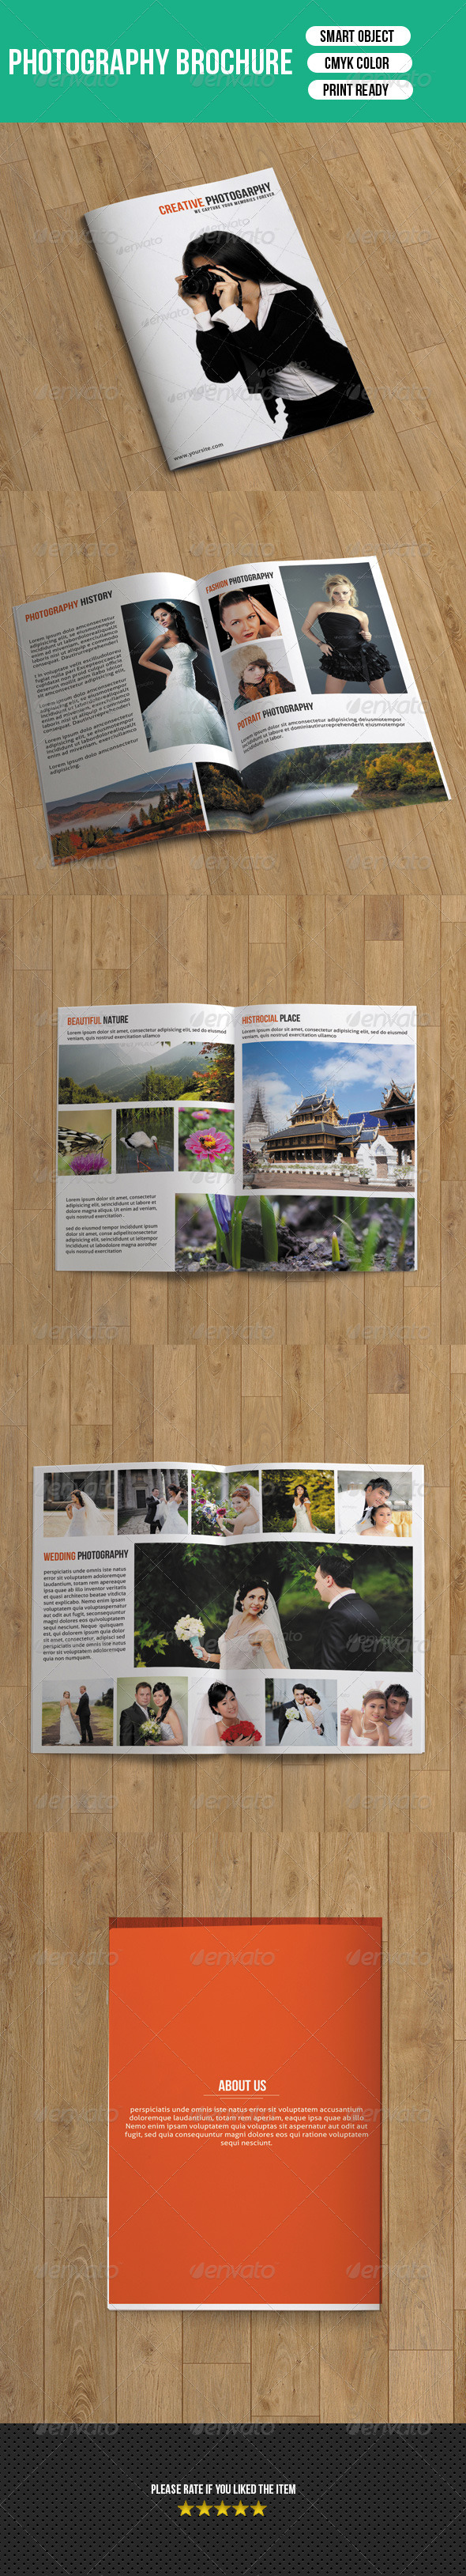 GraphicRiver Photography Brochure-8 Pages 7291275